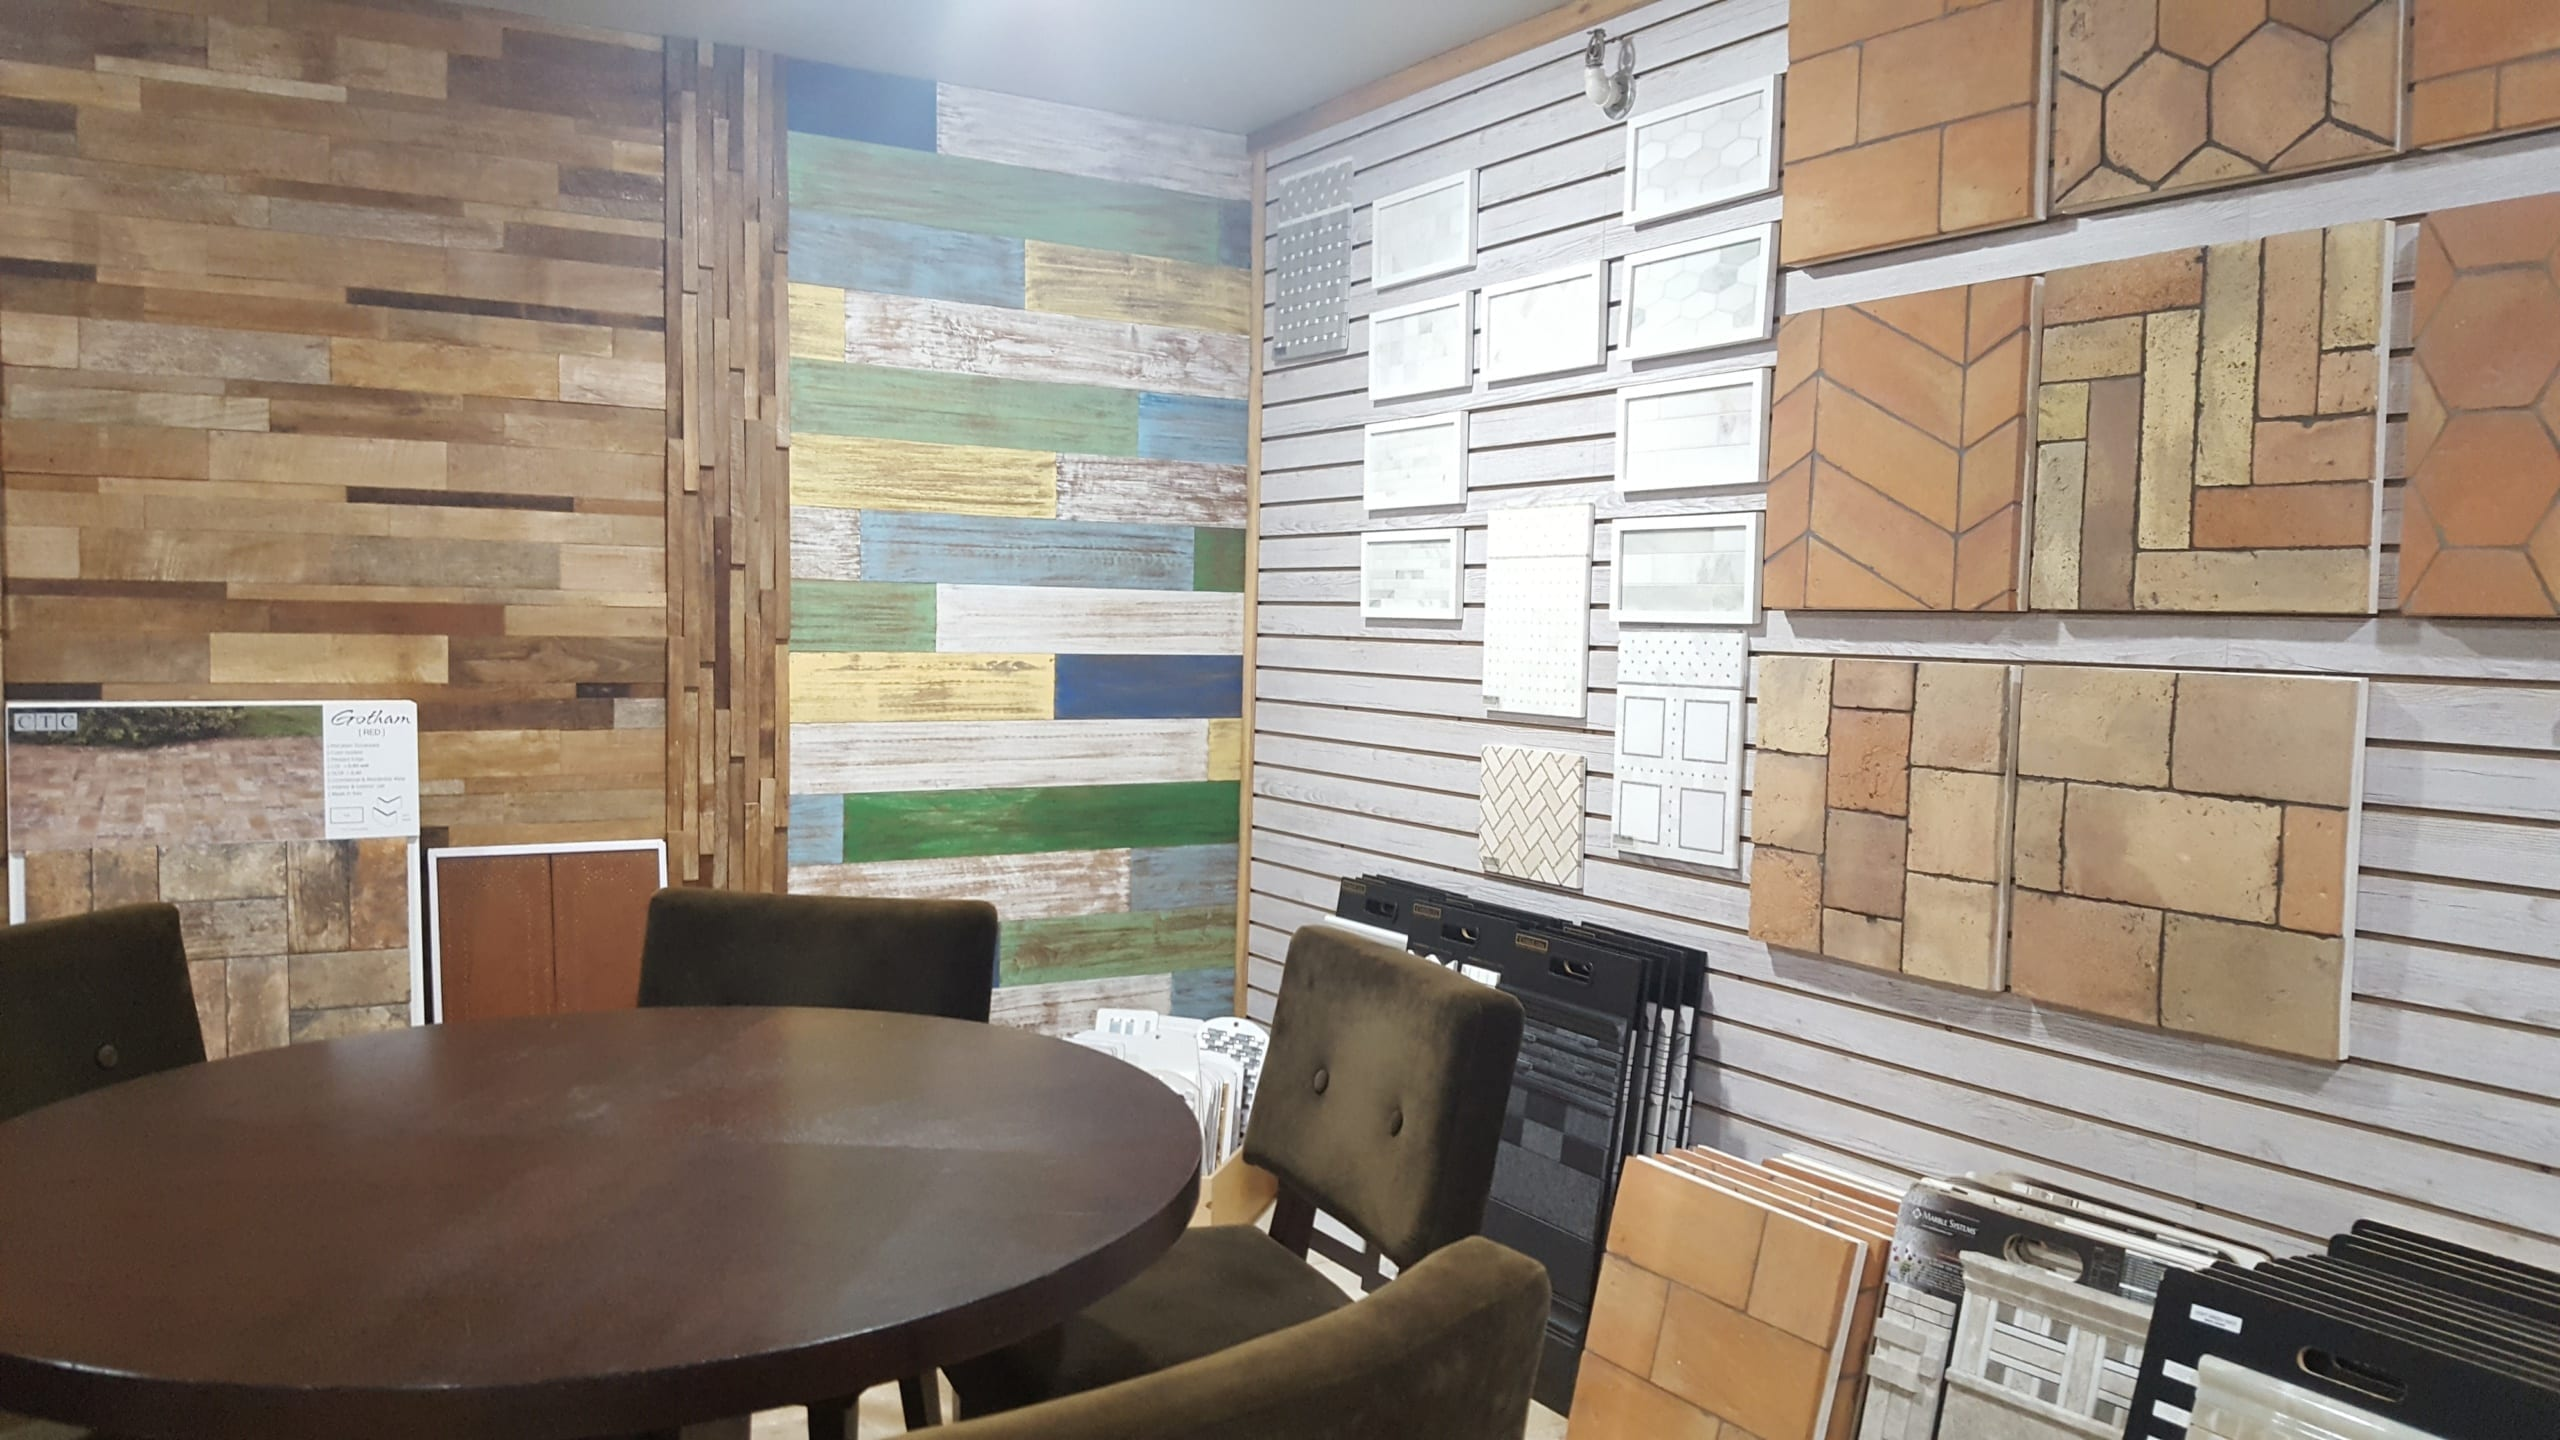 Our Showroom View 1 - Sarisand Tile